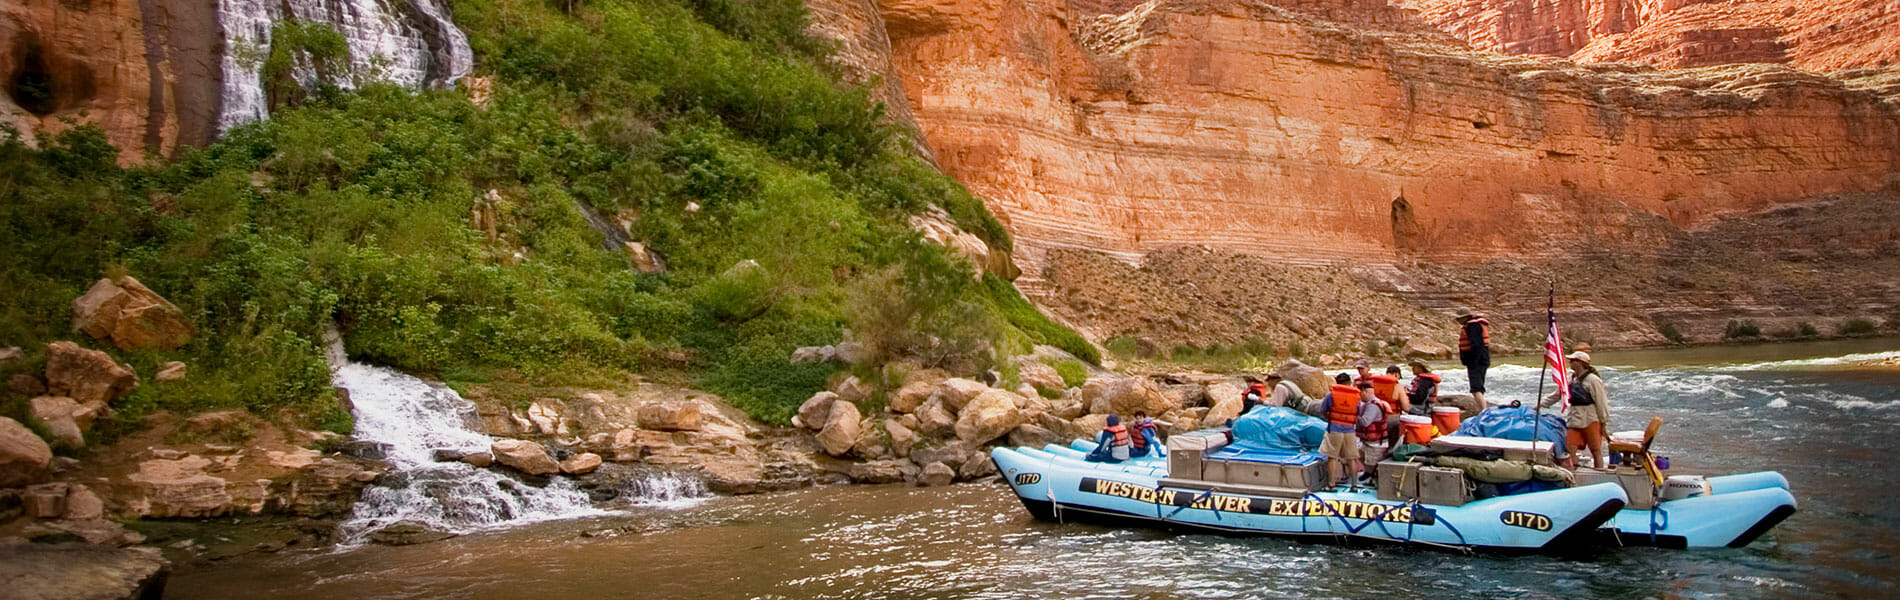 Grand Canyon Vacation Packages